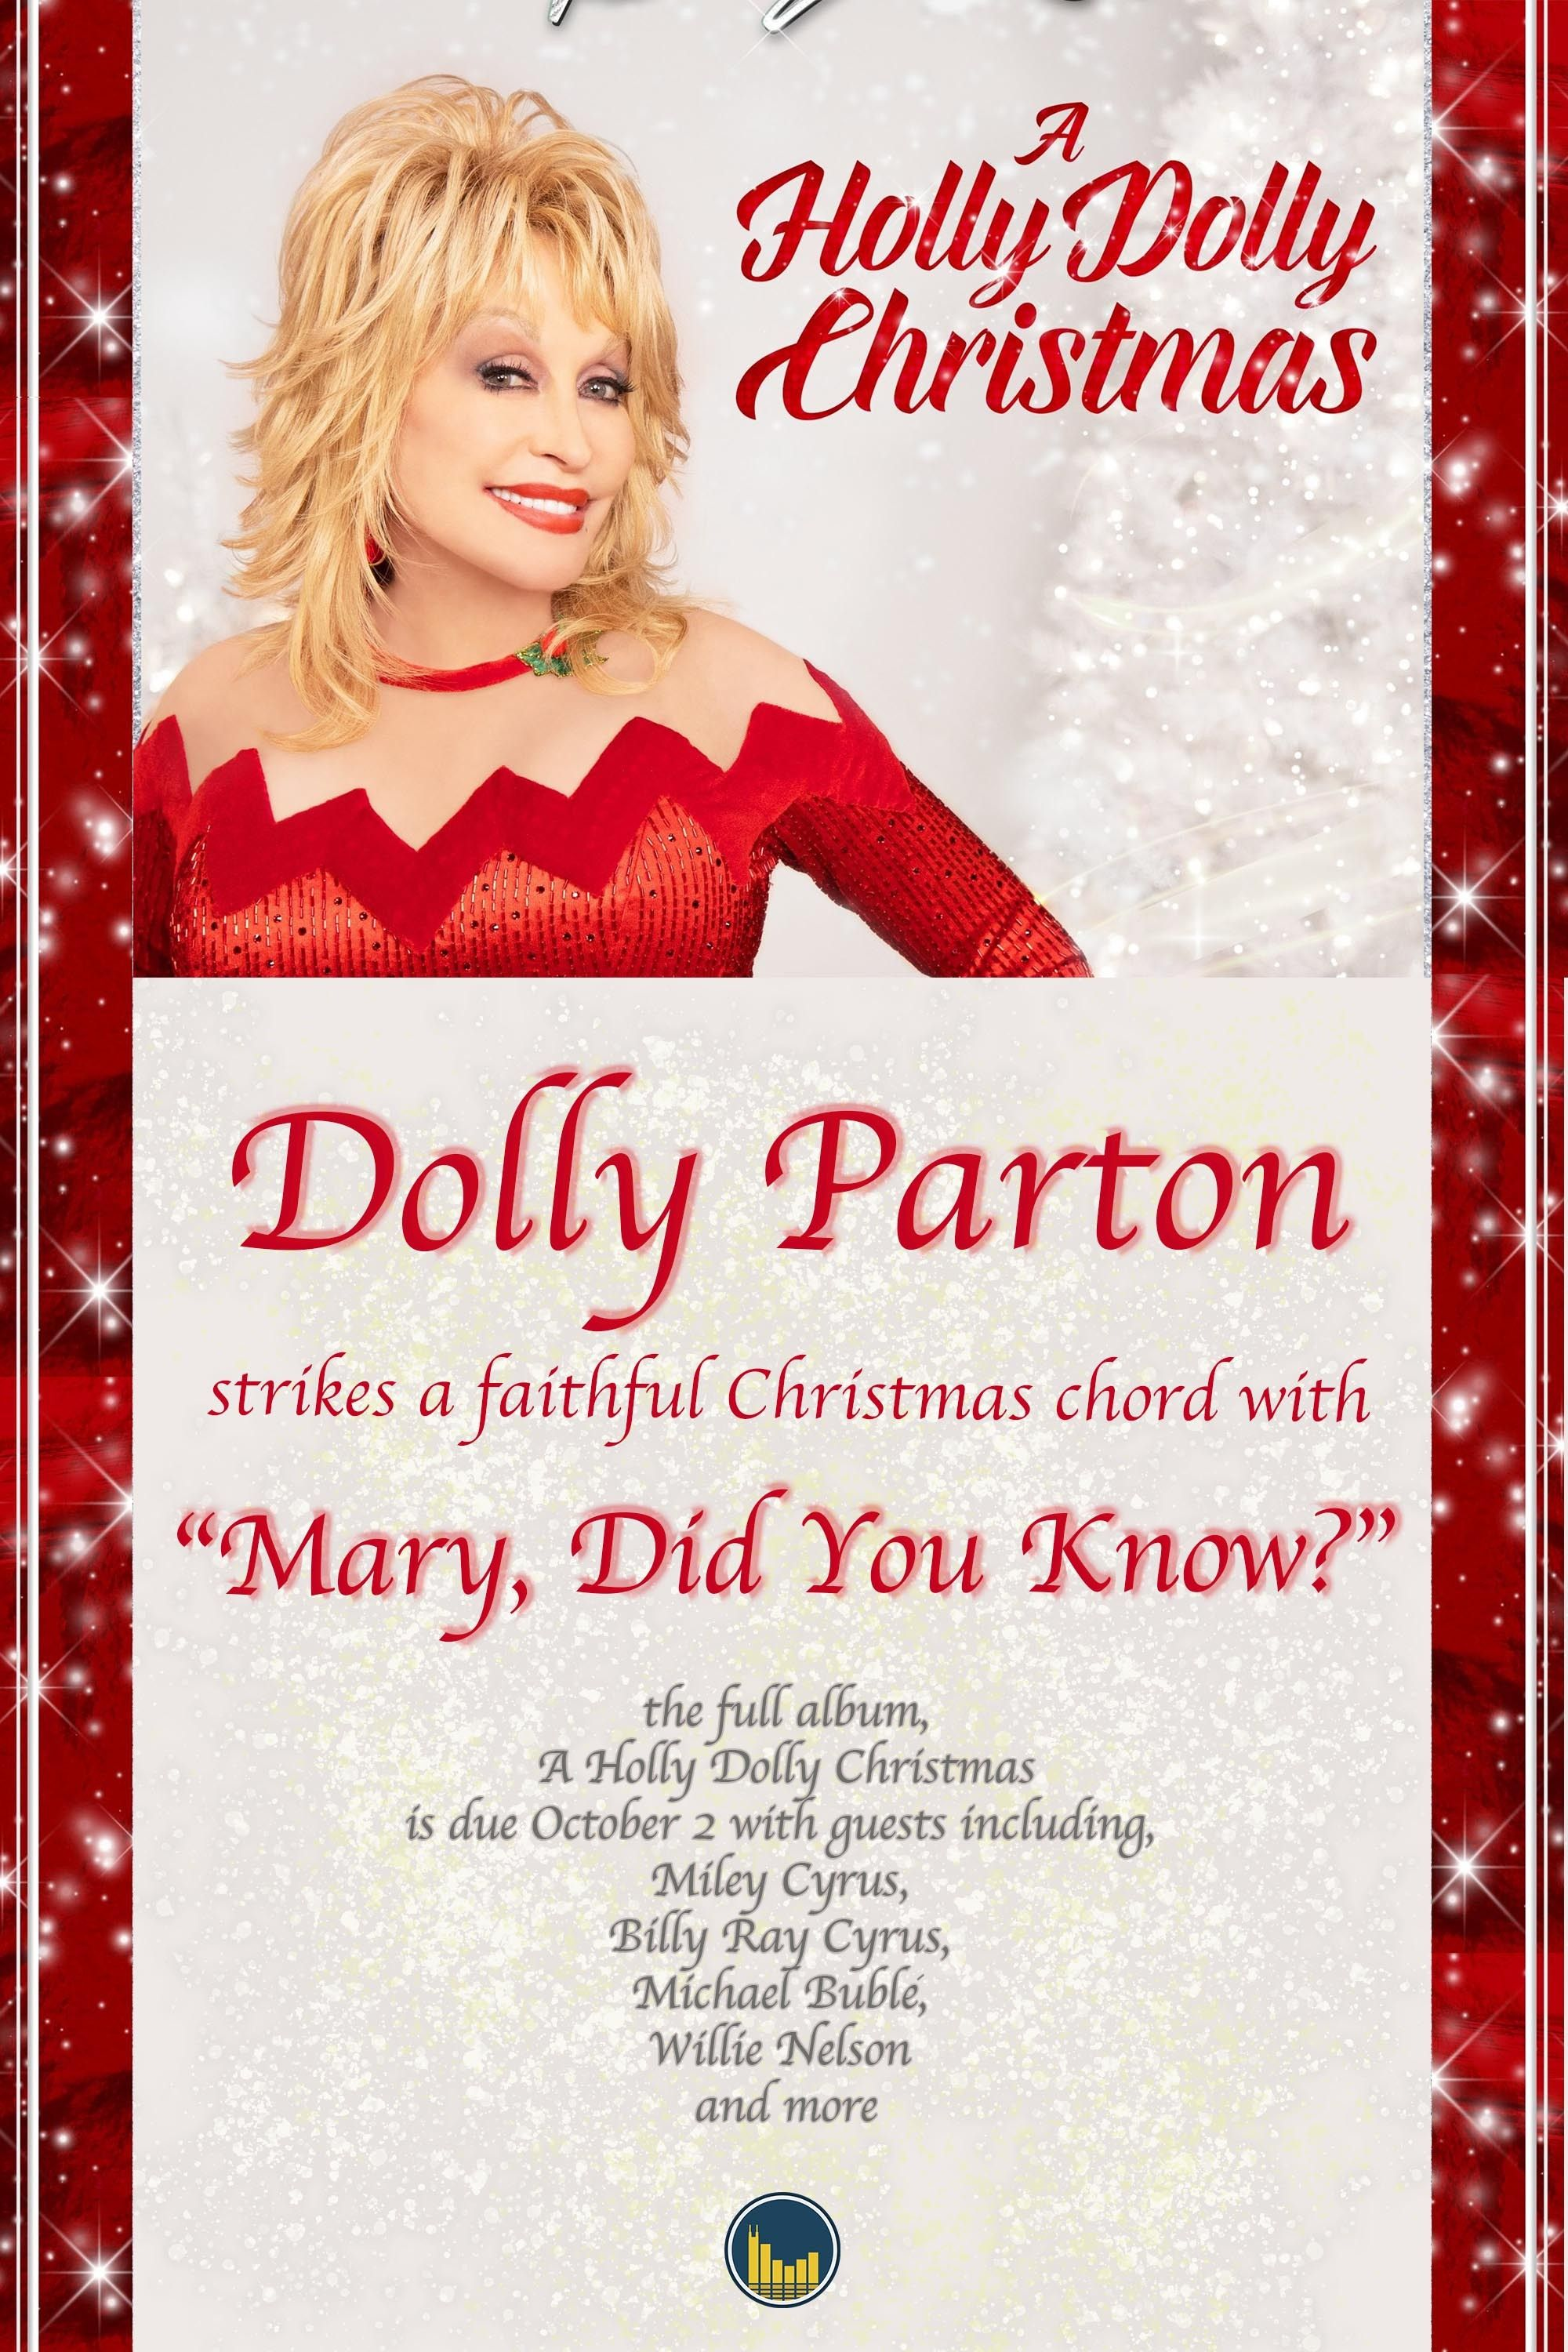 Christmas Country Music 2020 Dolly Parton Announces 'A Holly Dolly Christmas' Album in 2020